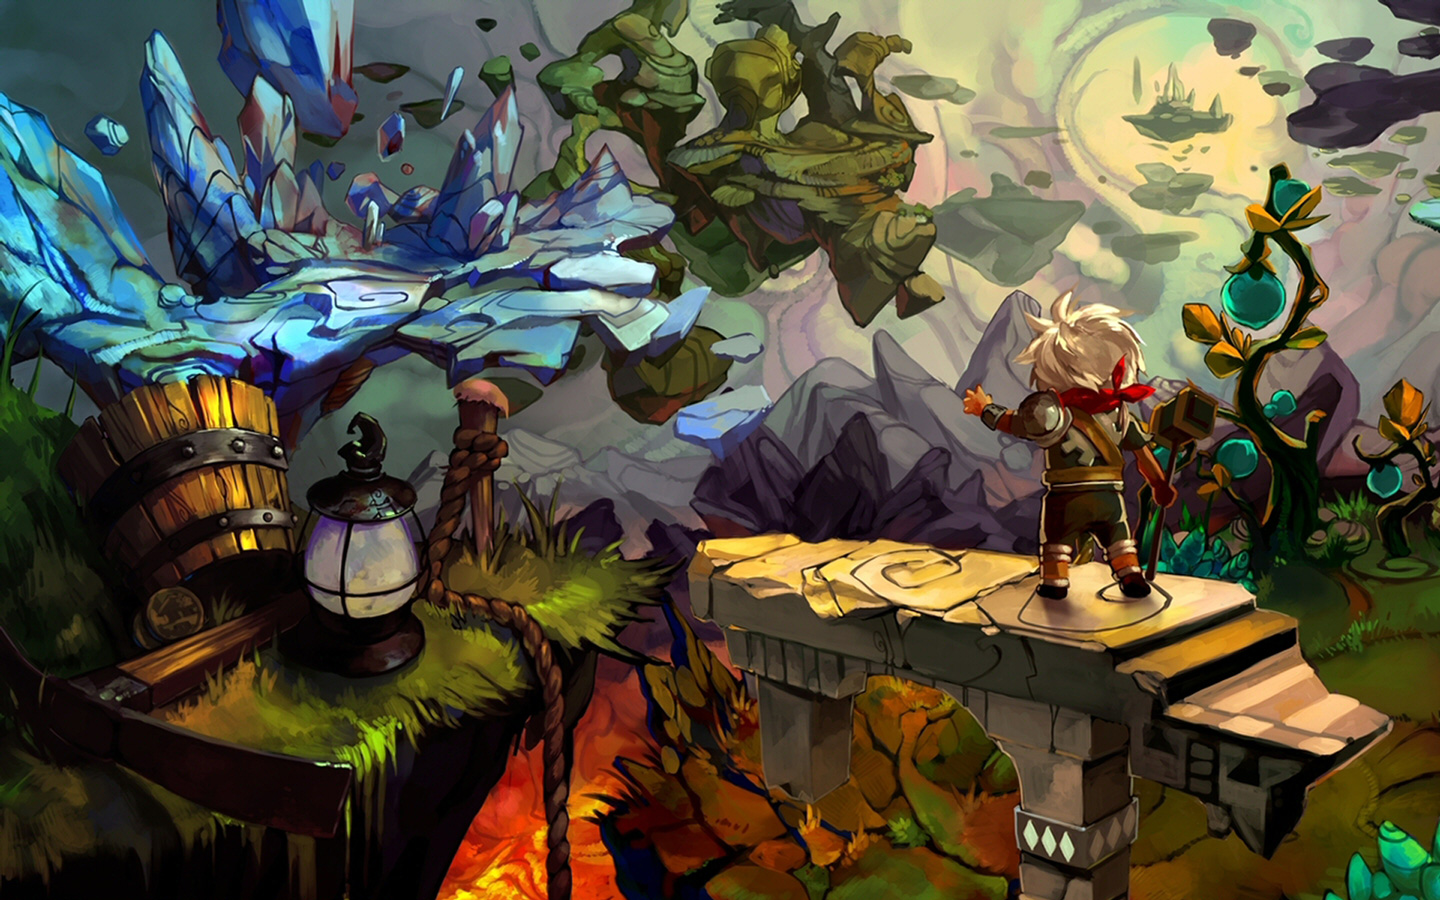 Bastion Wallpaper in 1440x900